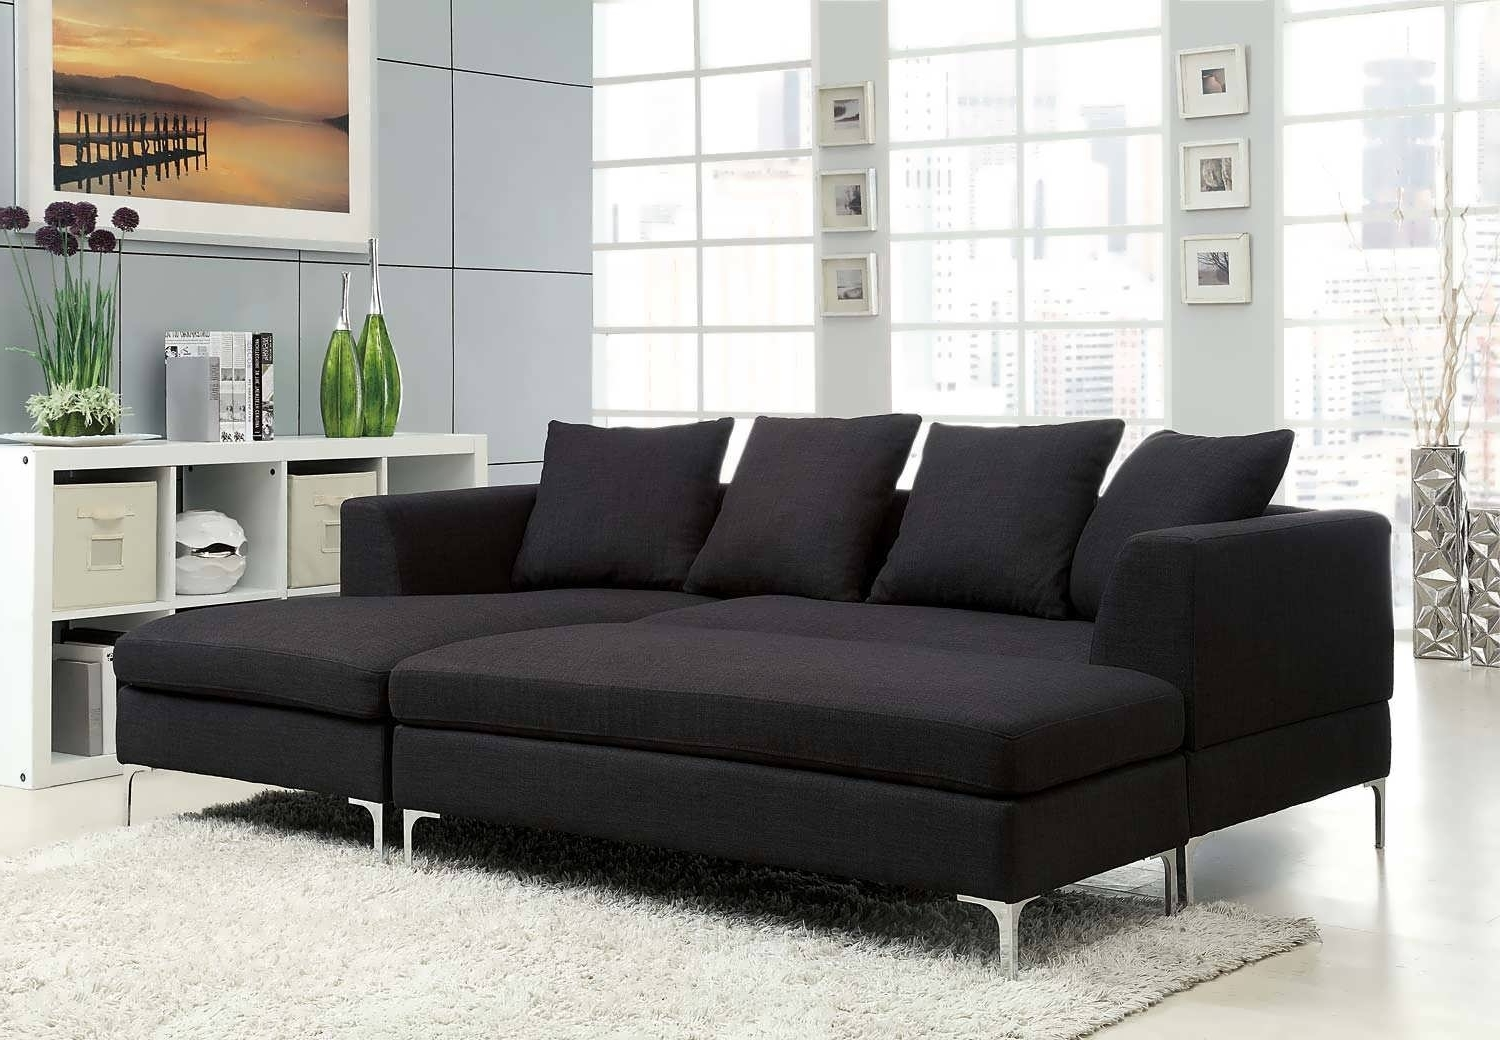 Sofa : Sectional Navy Blue Sectional Grey Leather Sectional Grey In Popular Chaise Sofa Sectionals (View 14 of 15)